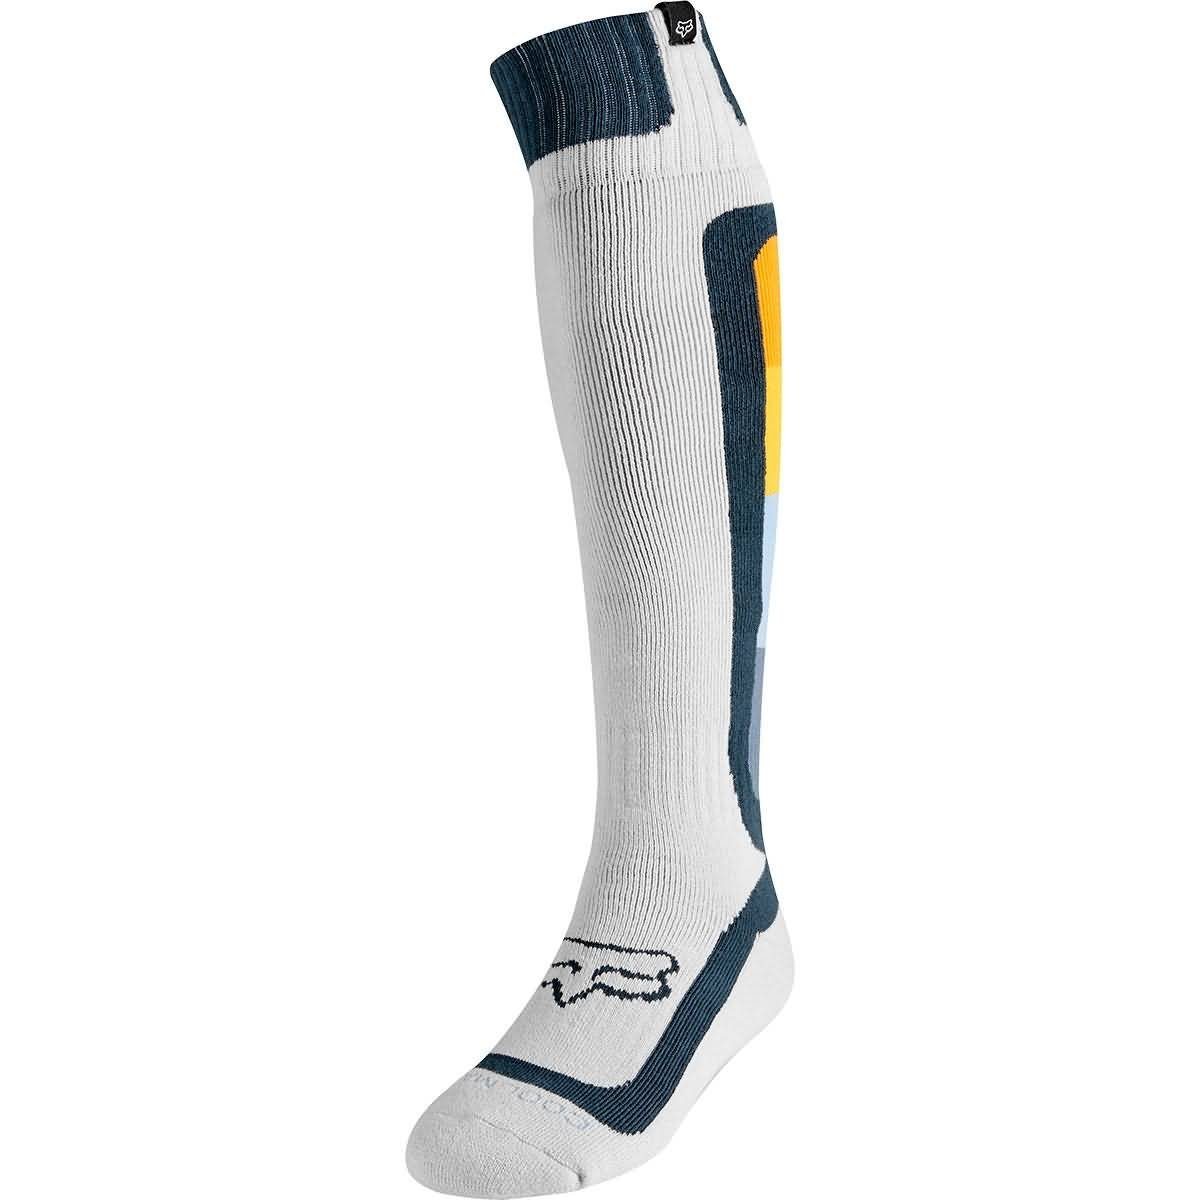 Fox Racing 2019 Coolmax Thin Socks - Murc (LARGE) (LIGHT GREY)